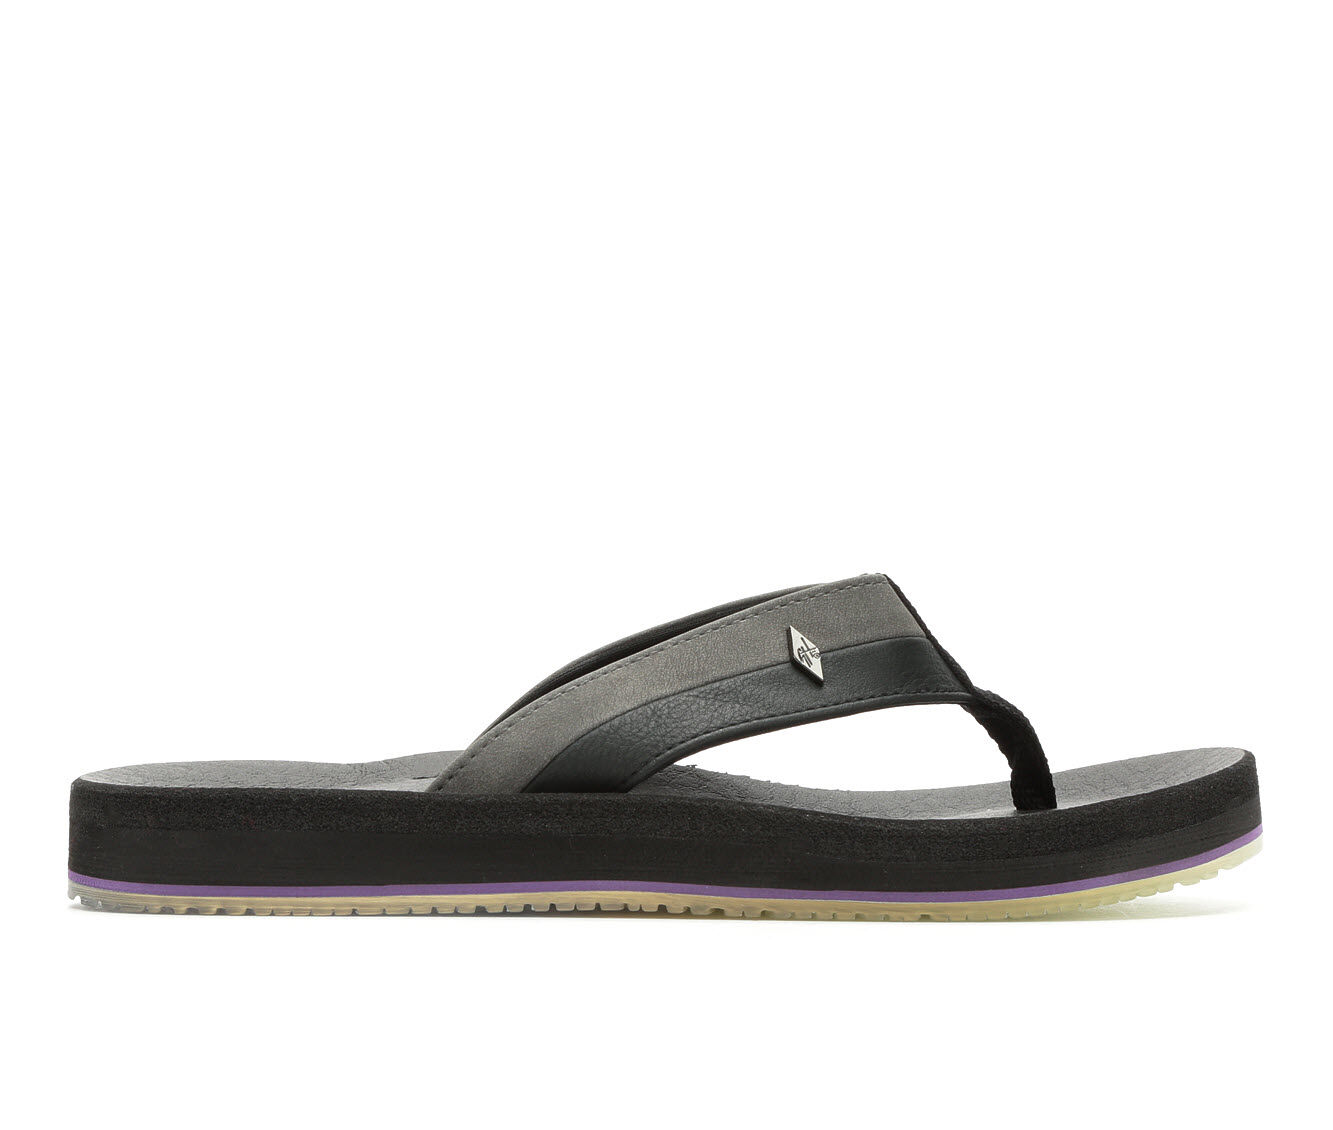 Women's Guy Harvey Castaway Marlin Sunset Sandals Black/Grey